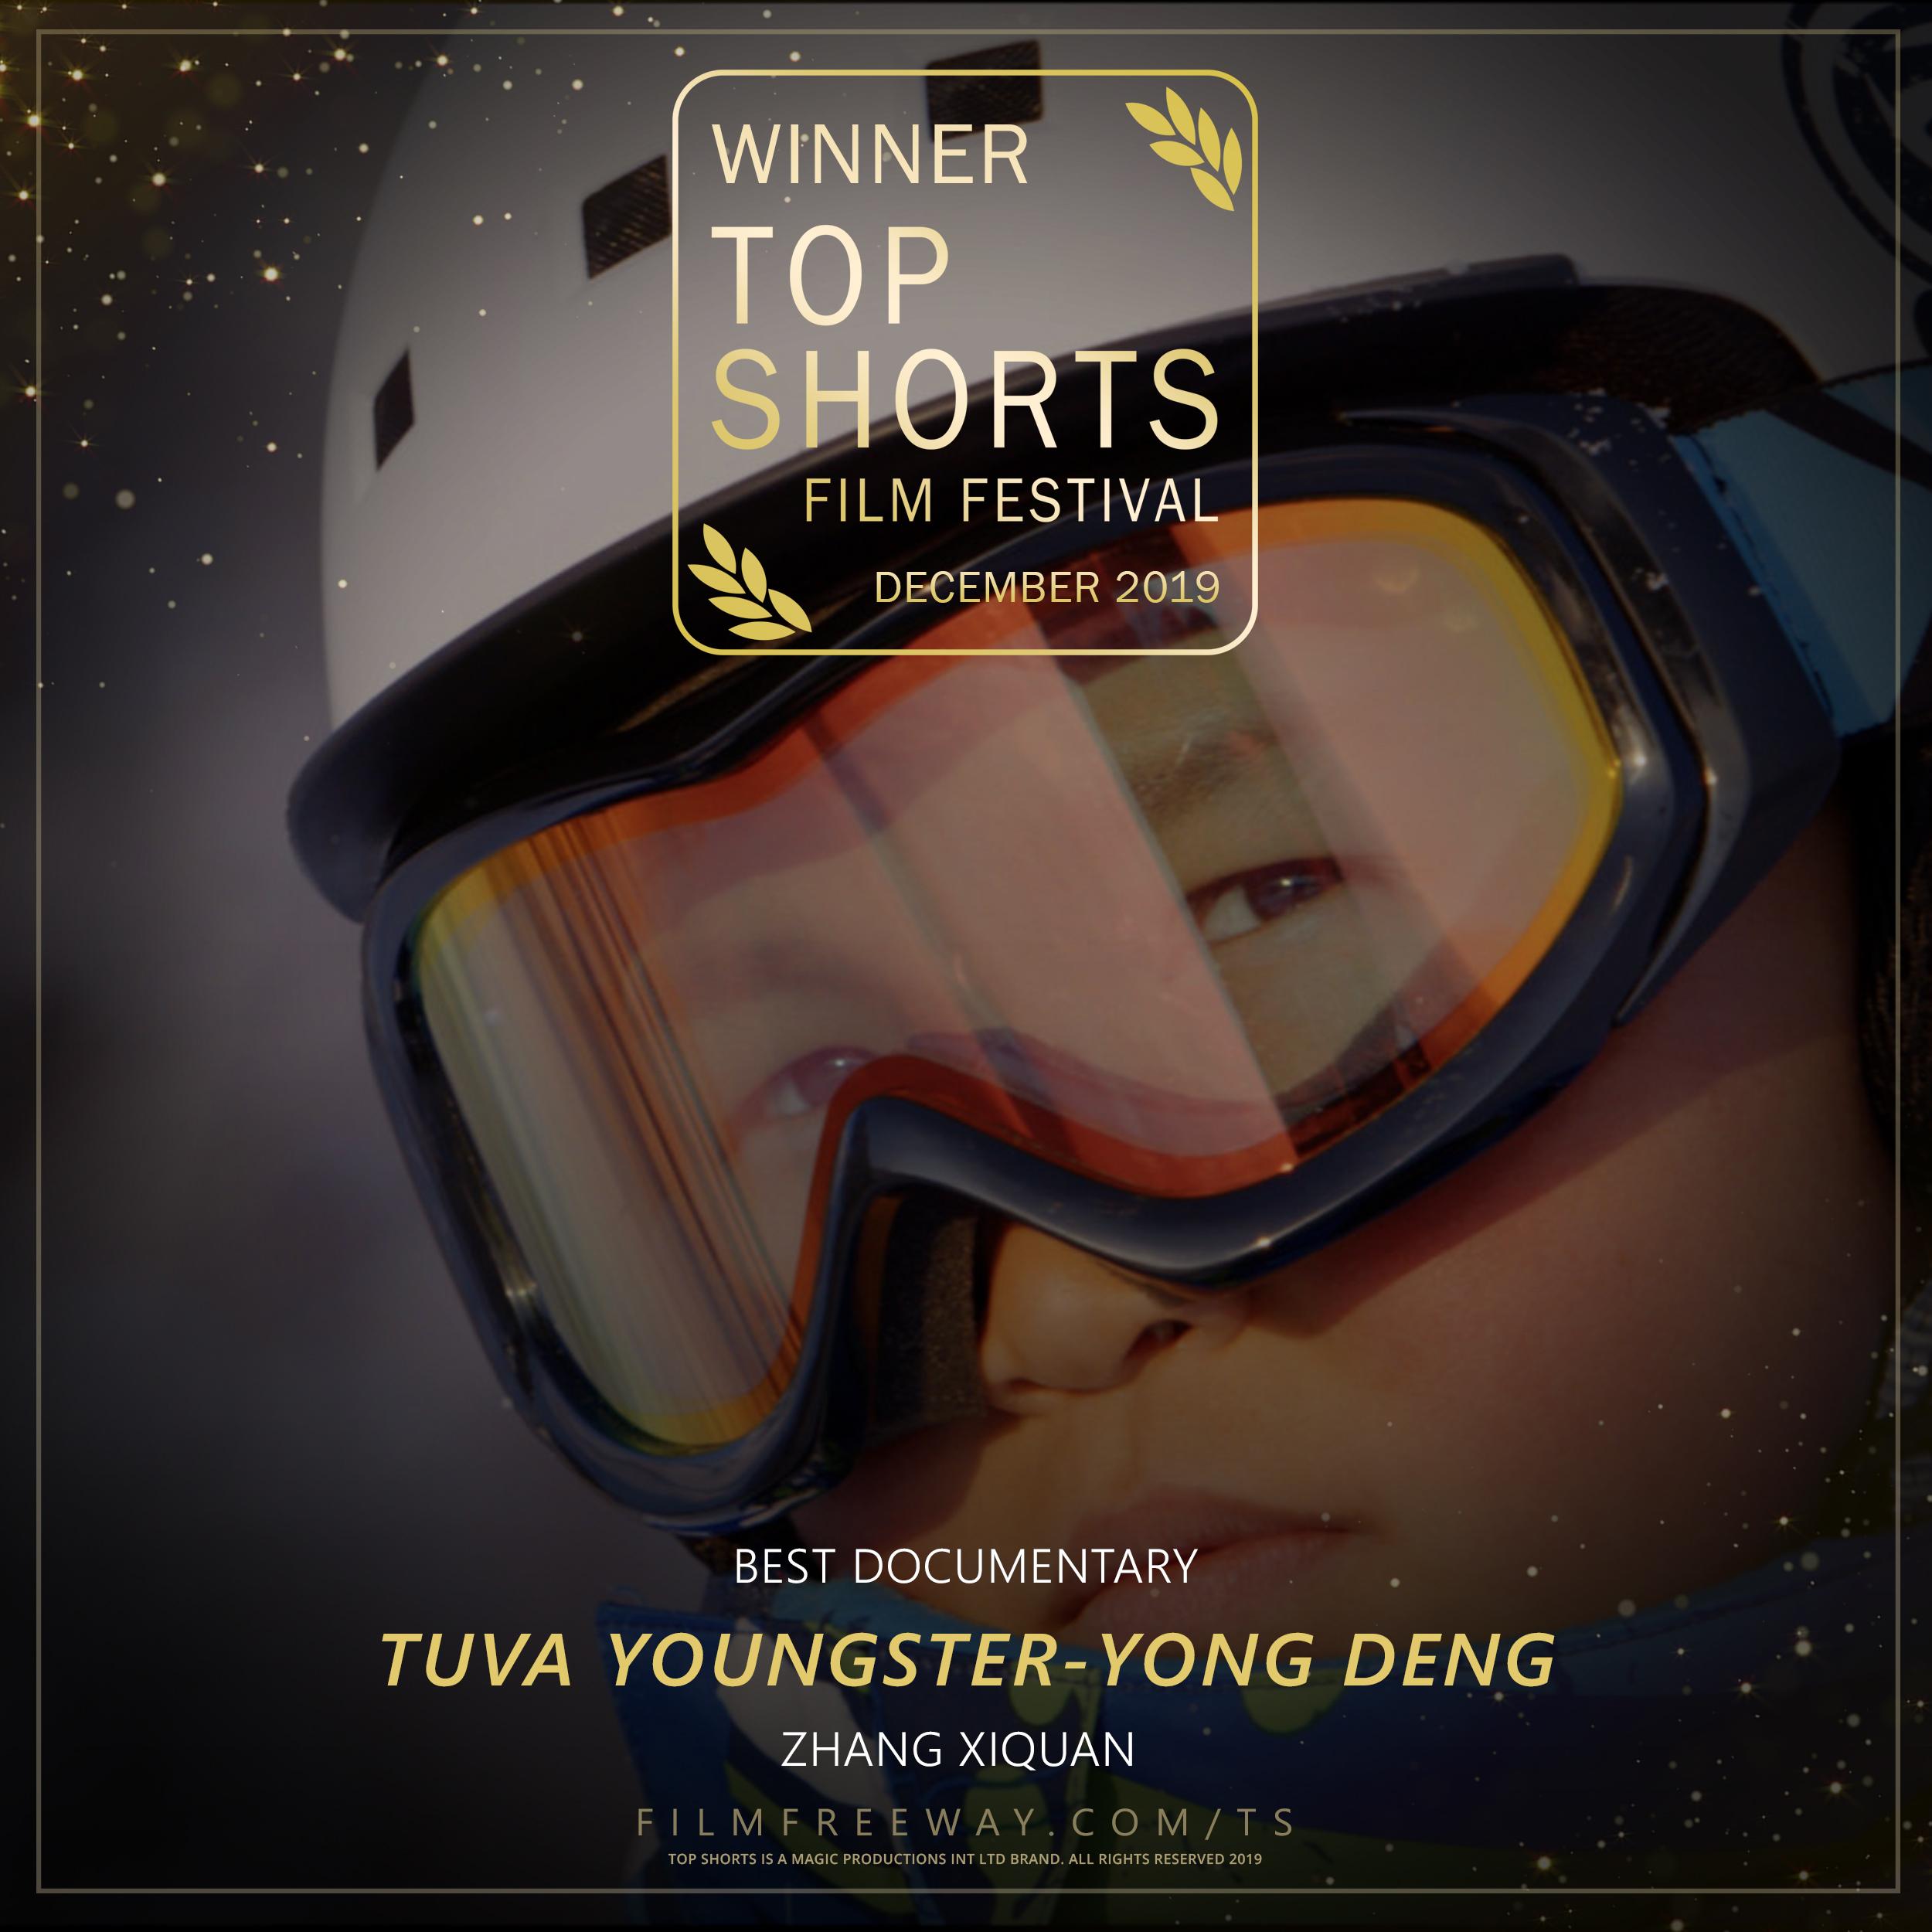 Tuva youngster-Yong Deng design